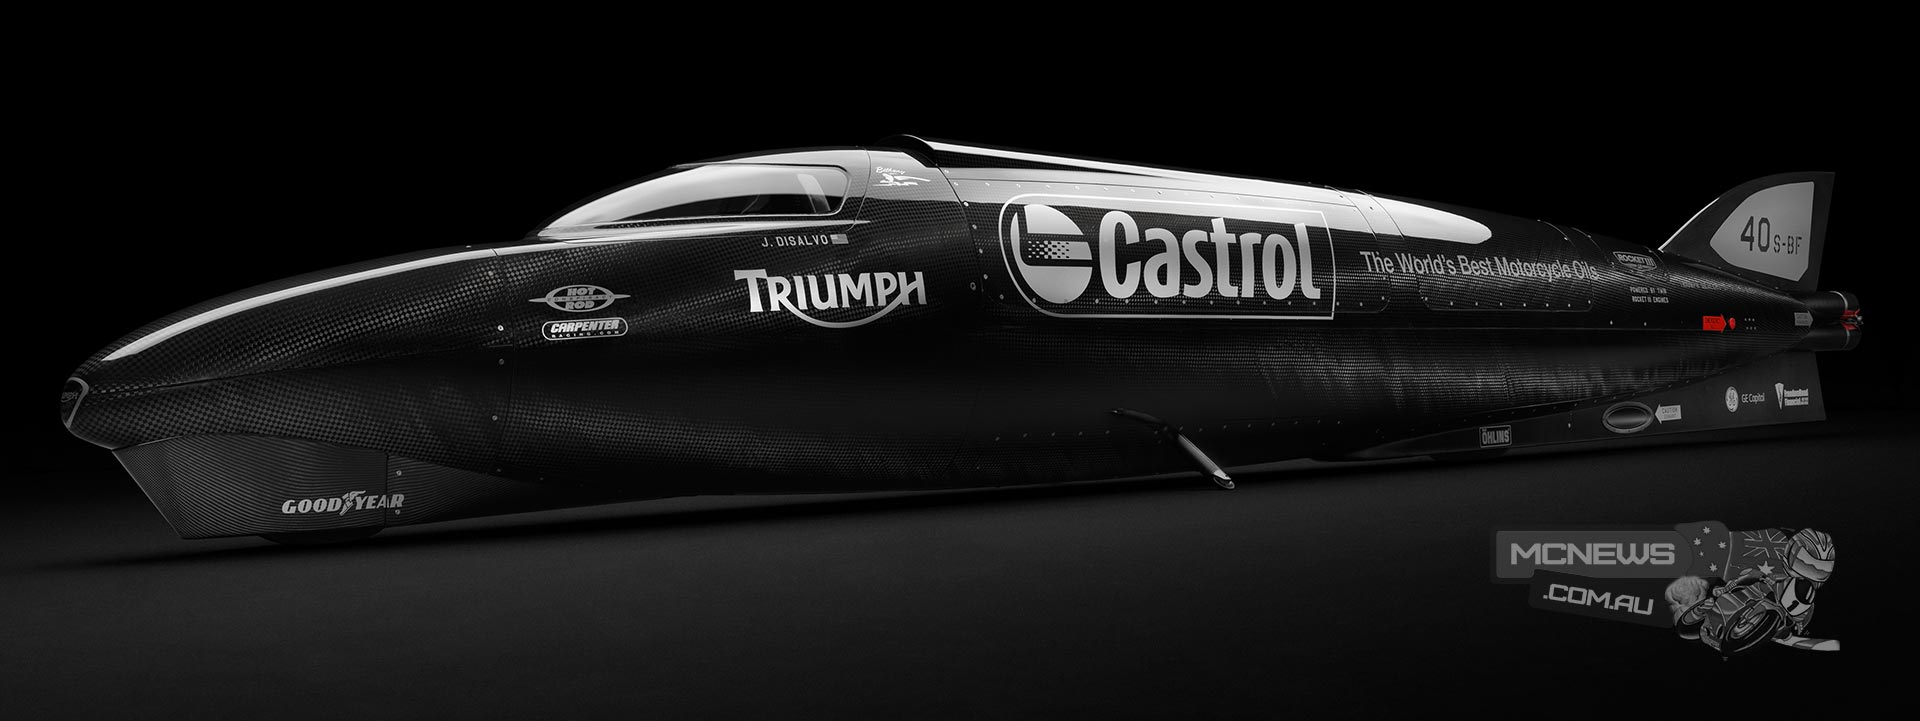 Guy Martin to pilot world speed record attempt on Triumph Rocket III Streamliner powered by two 2.3-litre Triumph Rocket III engines, producing 1,000 hp